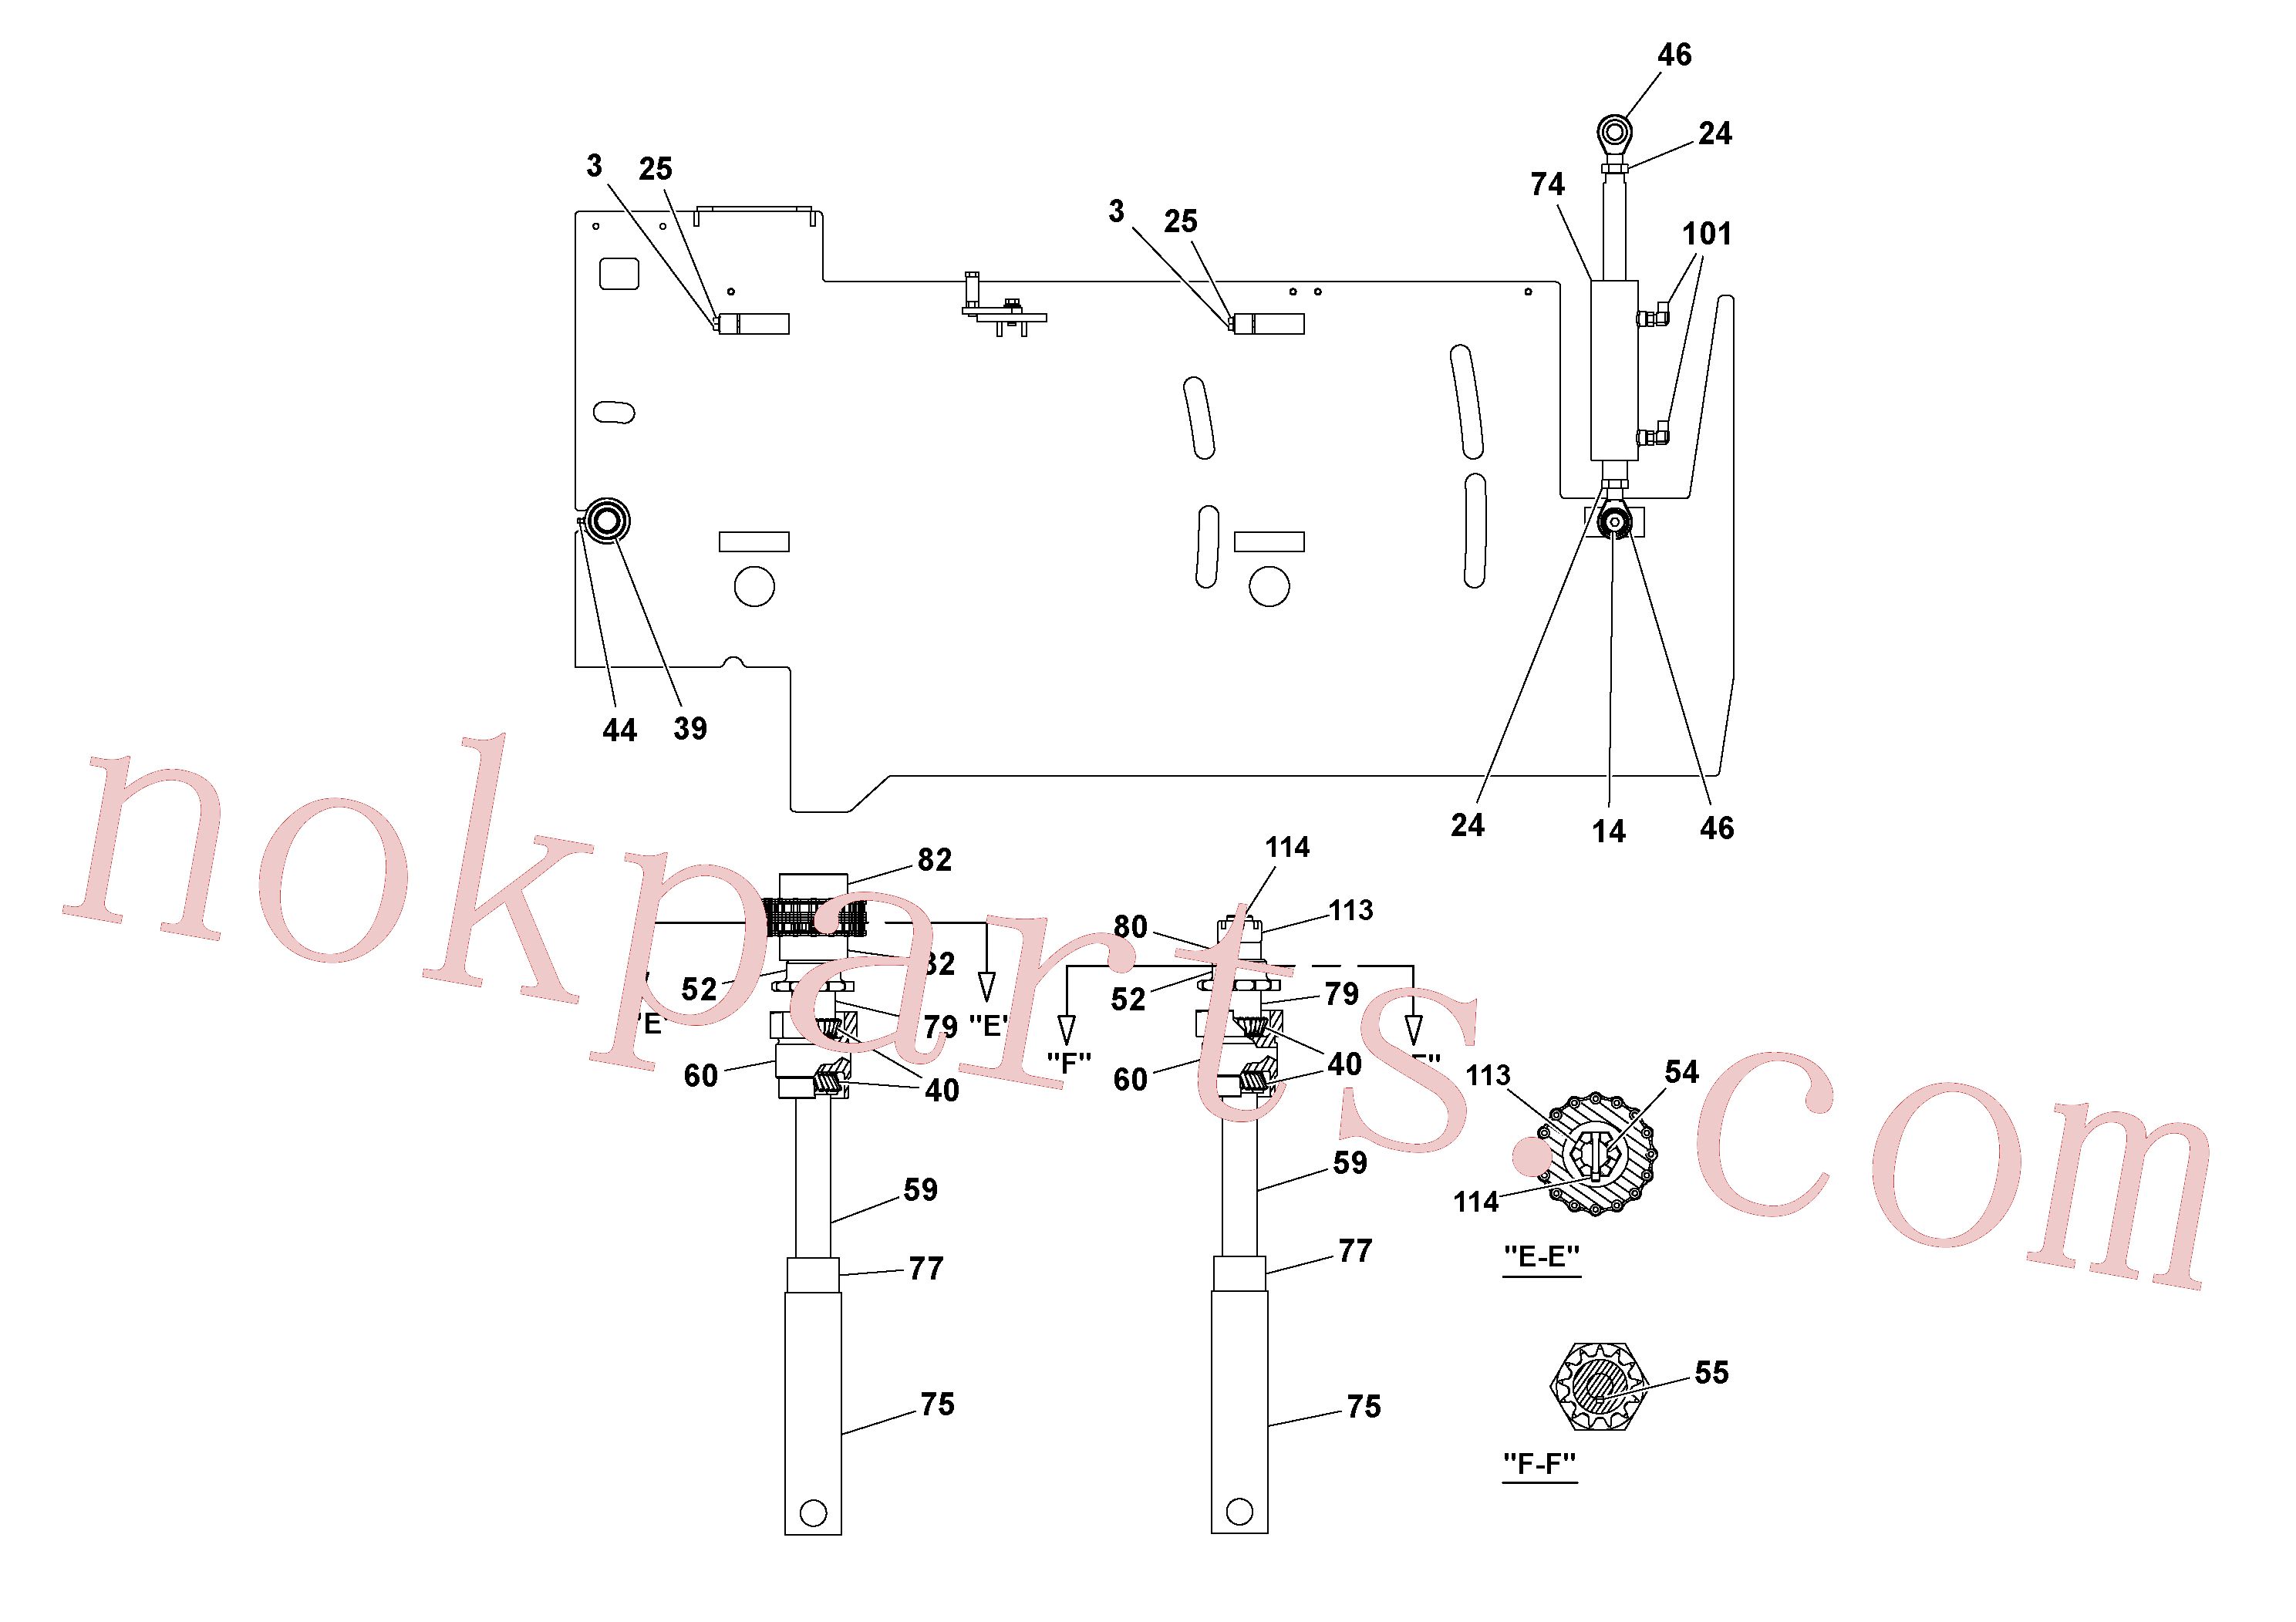 RM20313136 for Volvo 5' Extension Asssembly(1037004 assembly)